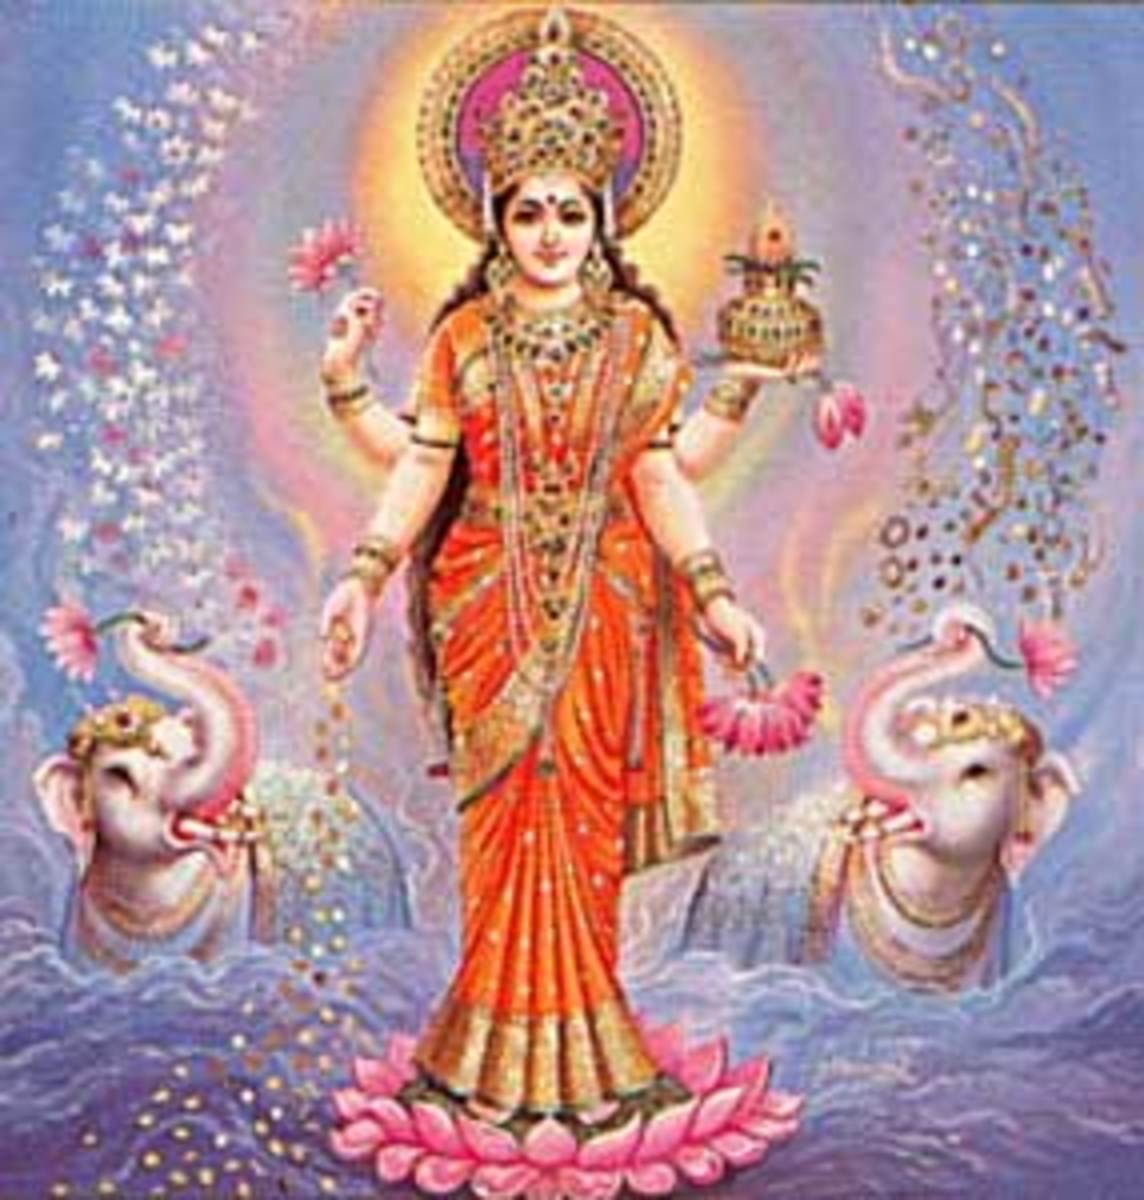 Lakshmi: Goddess of Abundance